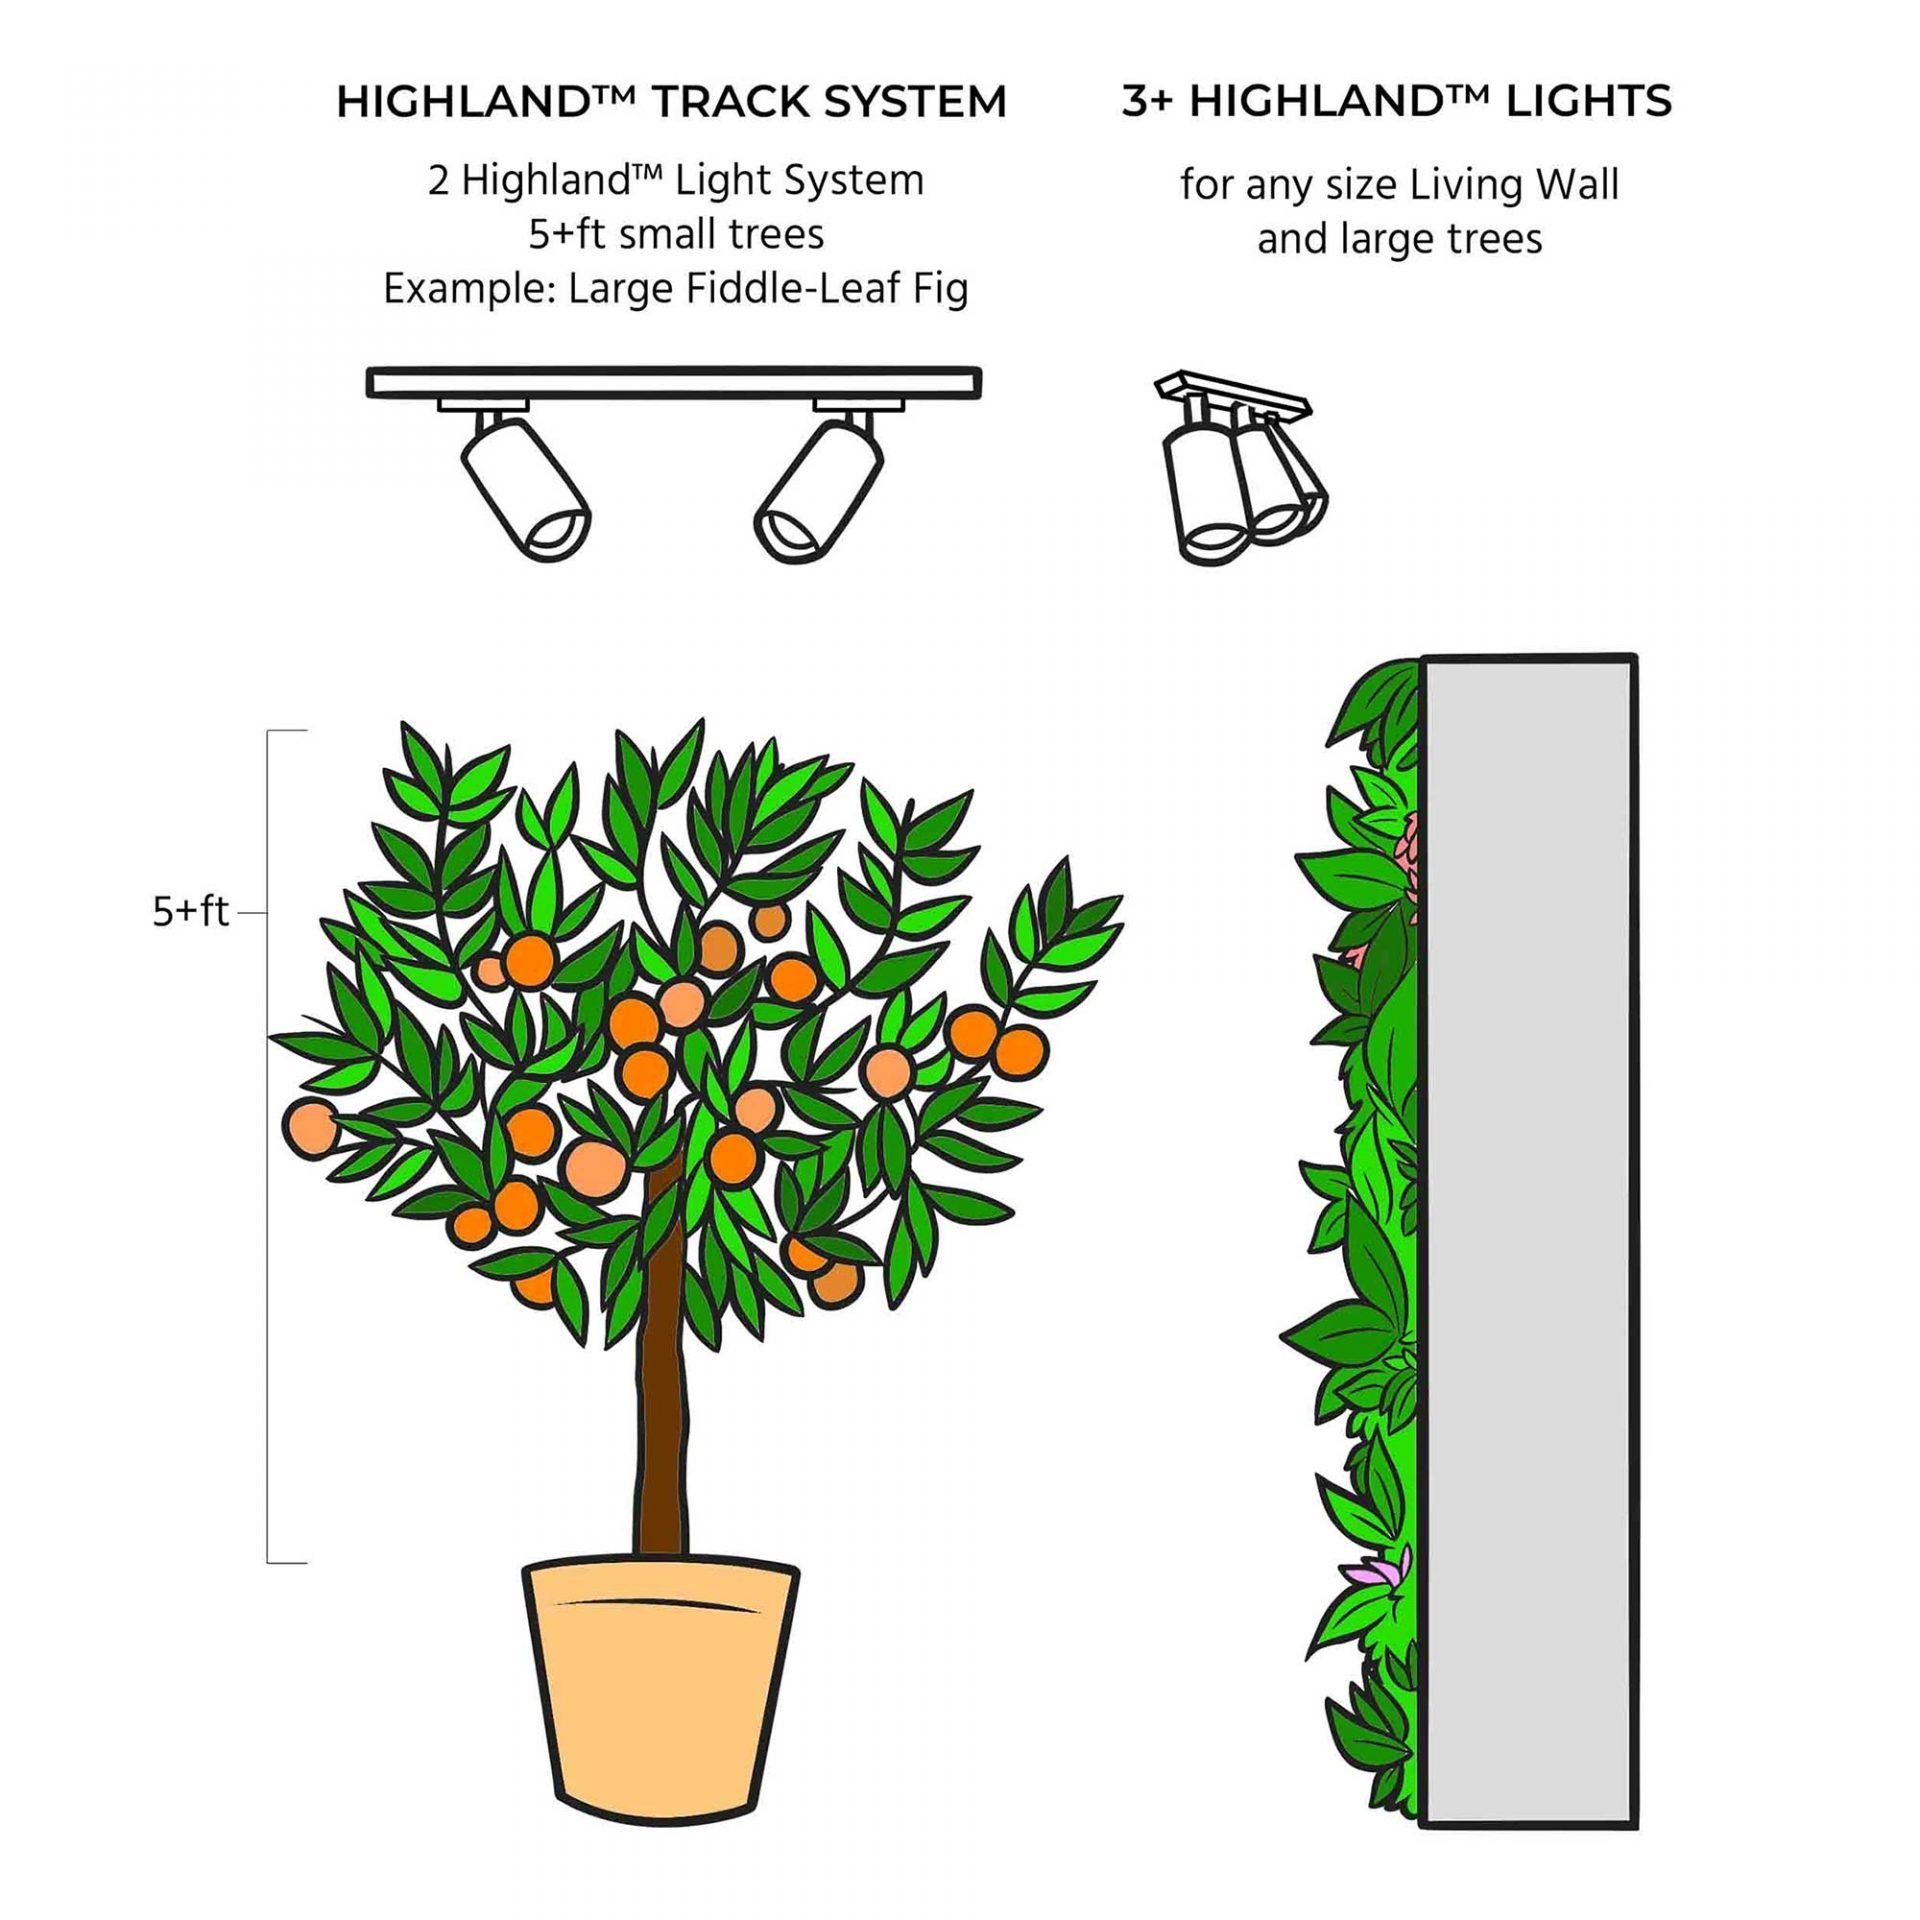 Highland Growing Guide Infographic